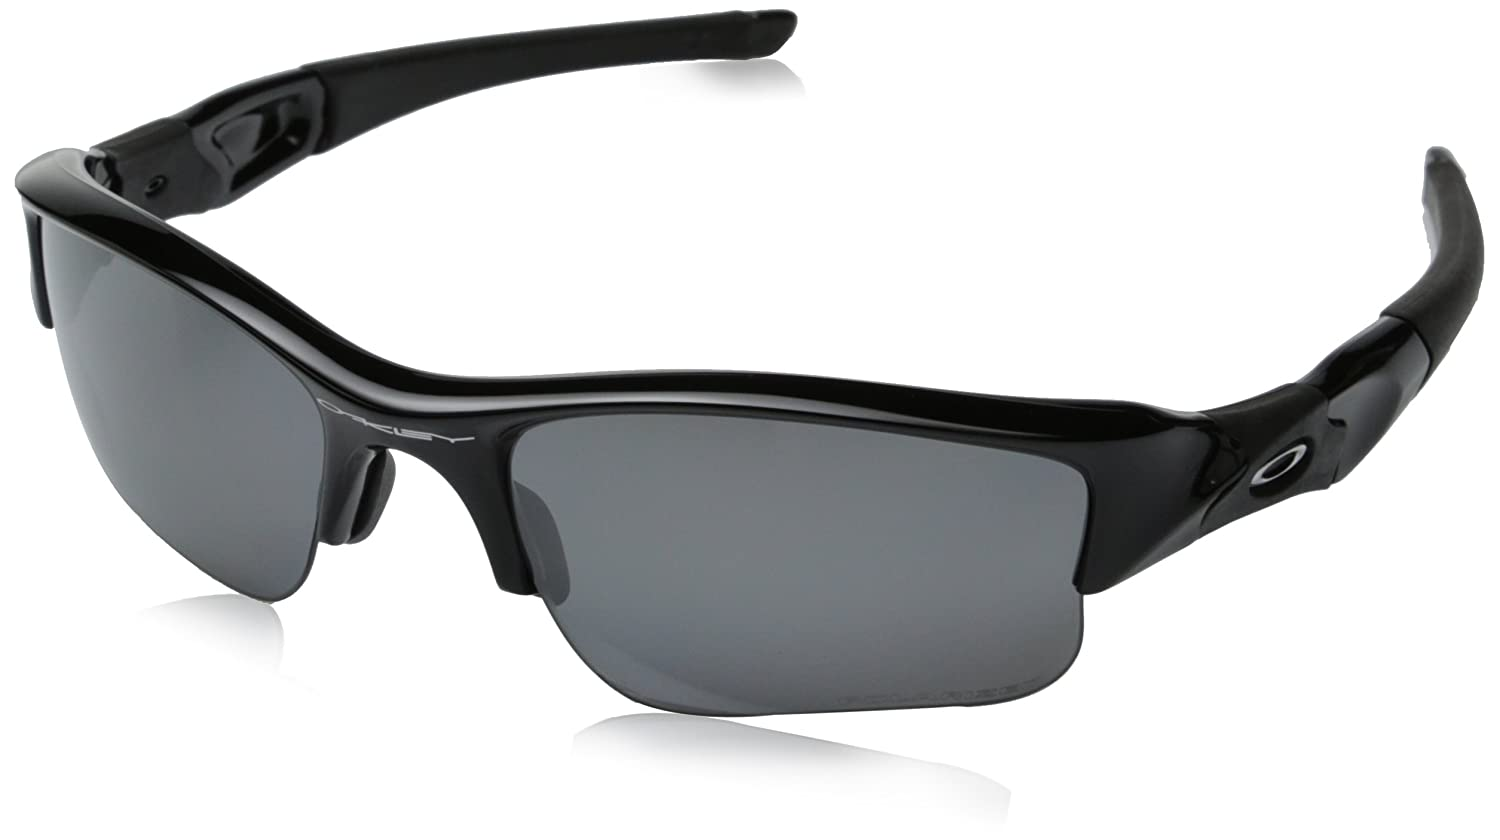 d5aaf3b729 Amazon.com  Oakley Flak Jacket XLJ Adult Polarized Sport Outdoor Sunglasses  Eyewear - Jet Black Black Iridium One Size Fits All  Oakley  Shoes